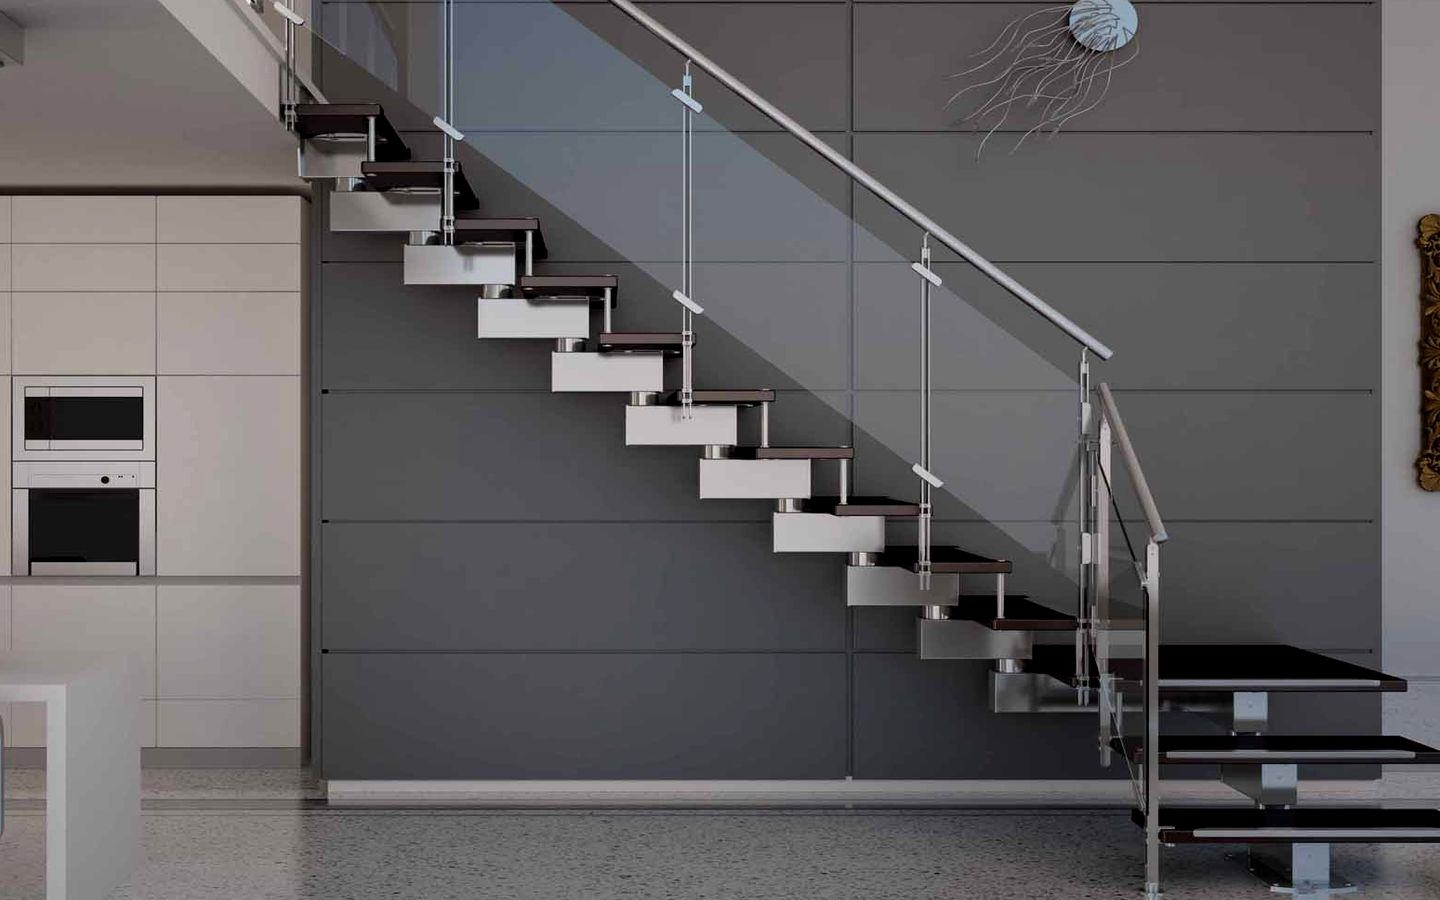 Unique And Modern Designs Of Home Ladders 2020 Photo Gallery | Modern House Ladder Design | Inside Outside | Metal Balustrade | Loft | Outdoor Balcony | Beautiful